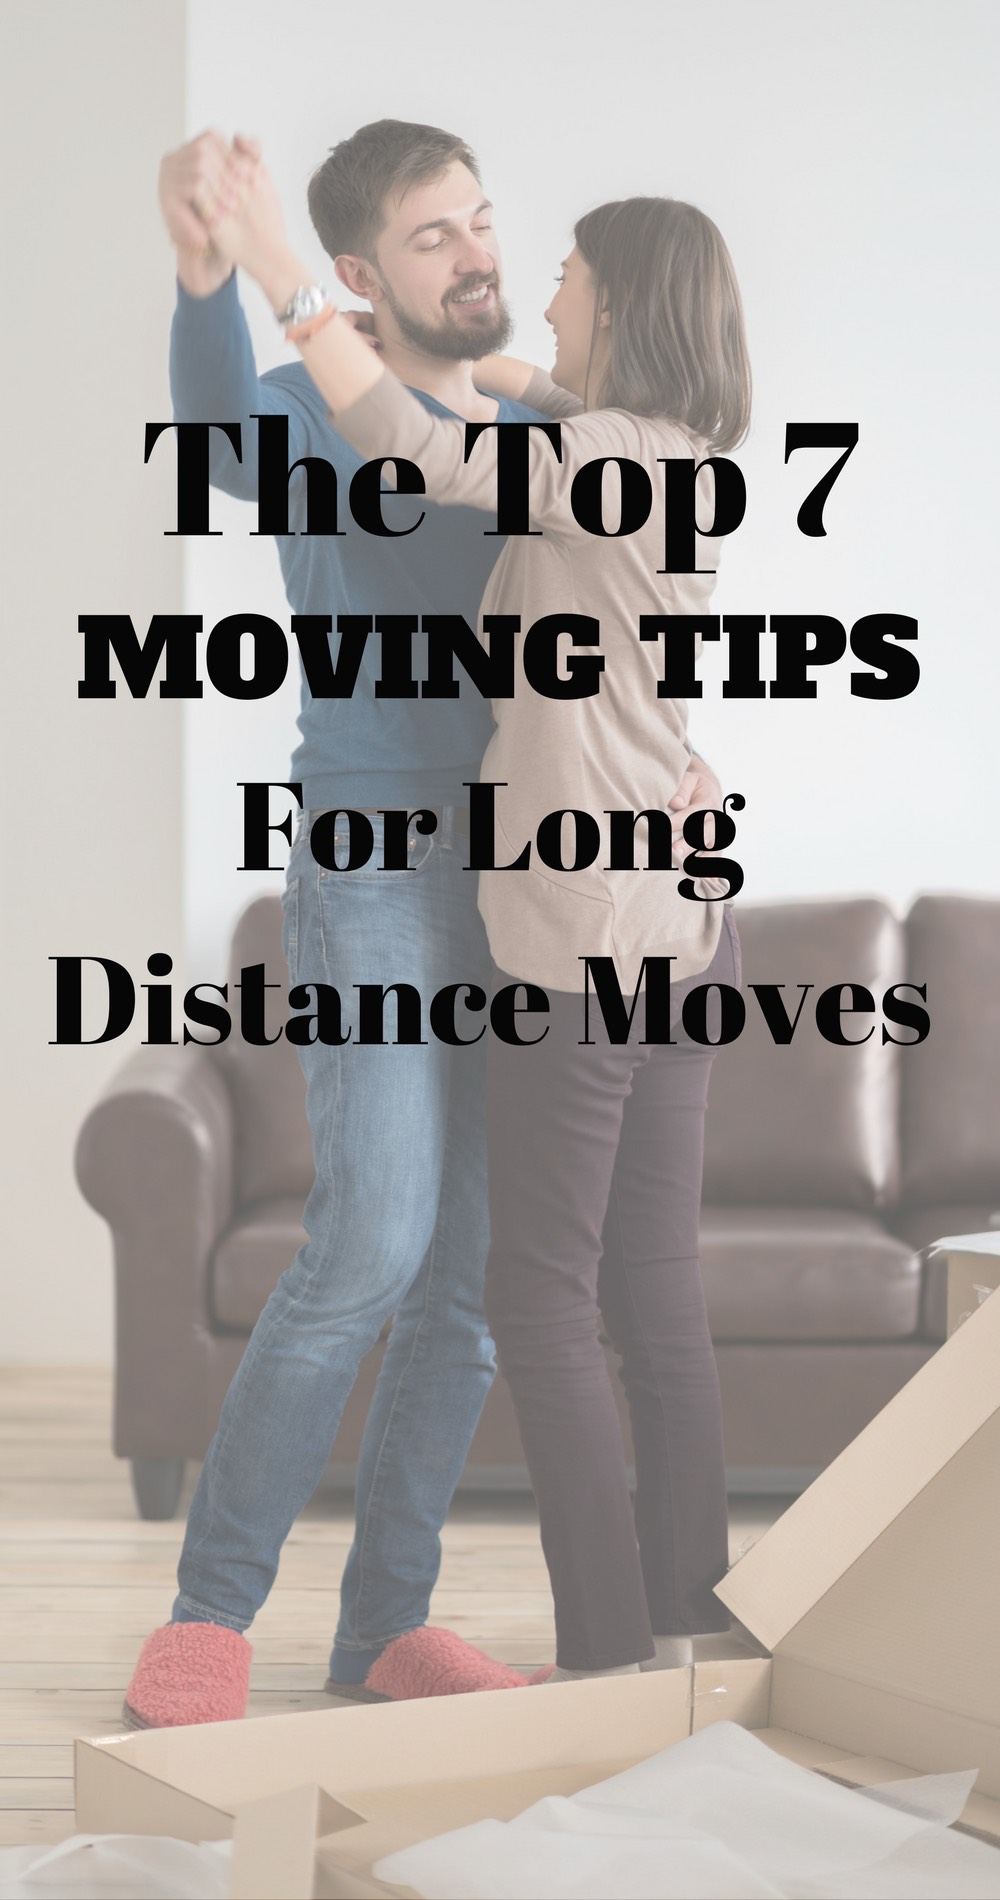 long distance moving tips | long distance moving checklist | long distance packing list | moving tips for cross country moves | cross country moving tips | cross country move tips